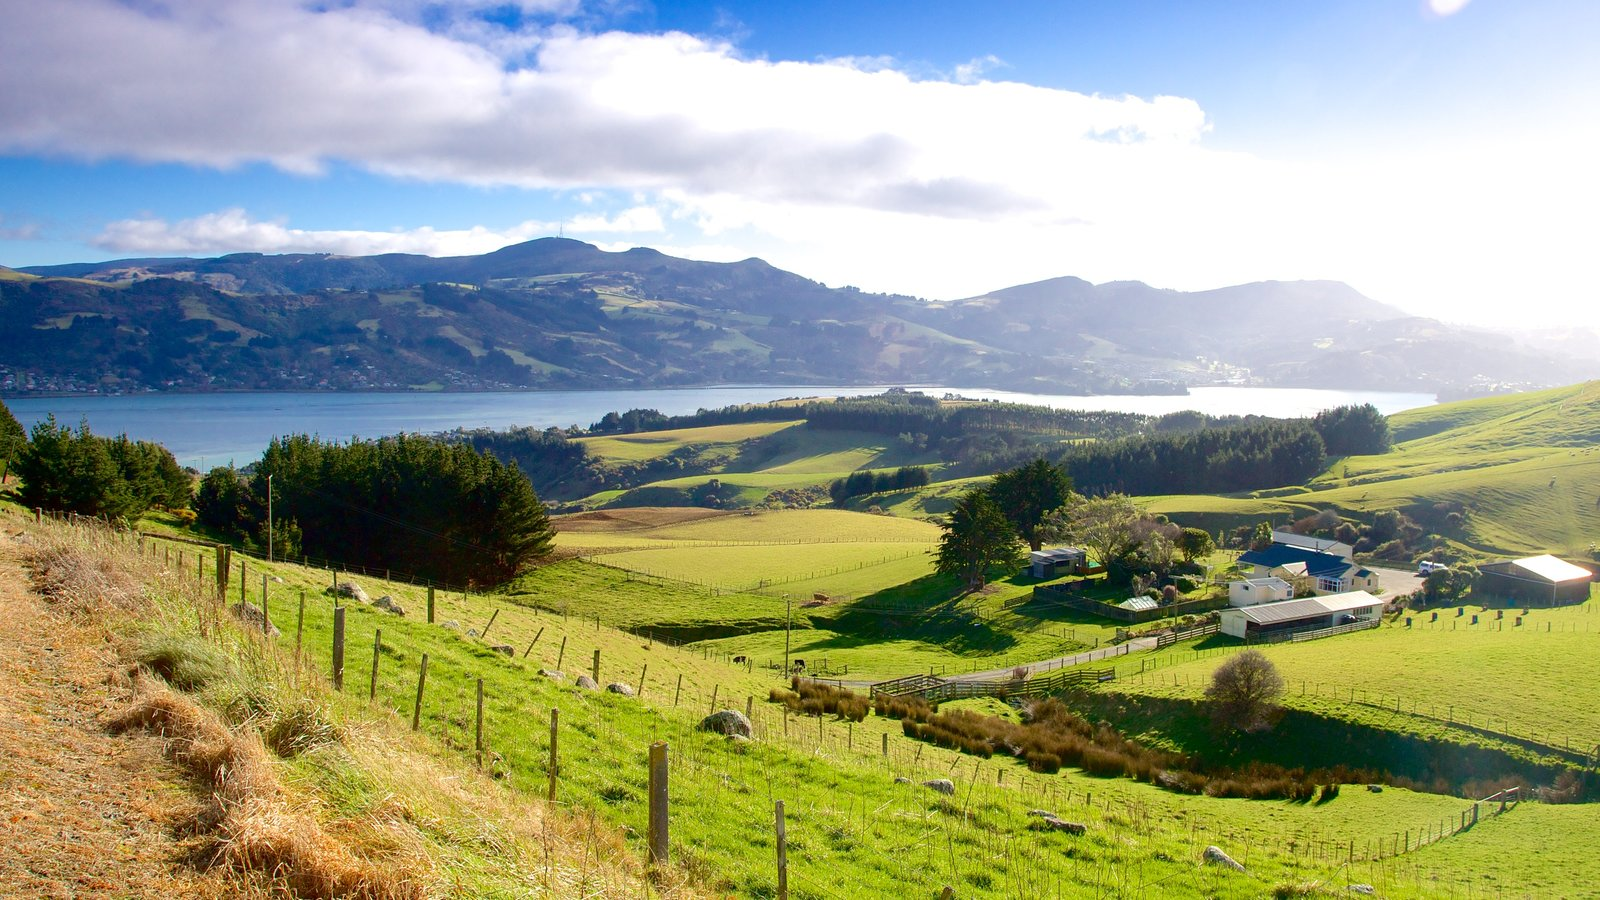 Dunedin which includes tranquil scenes and landscape views